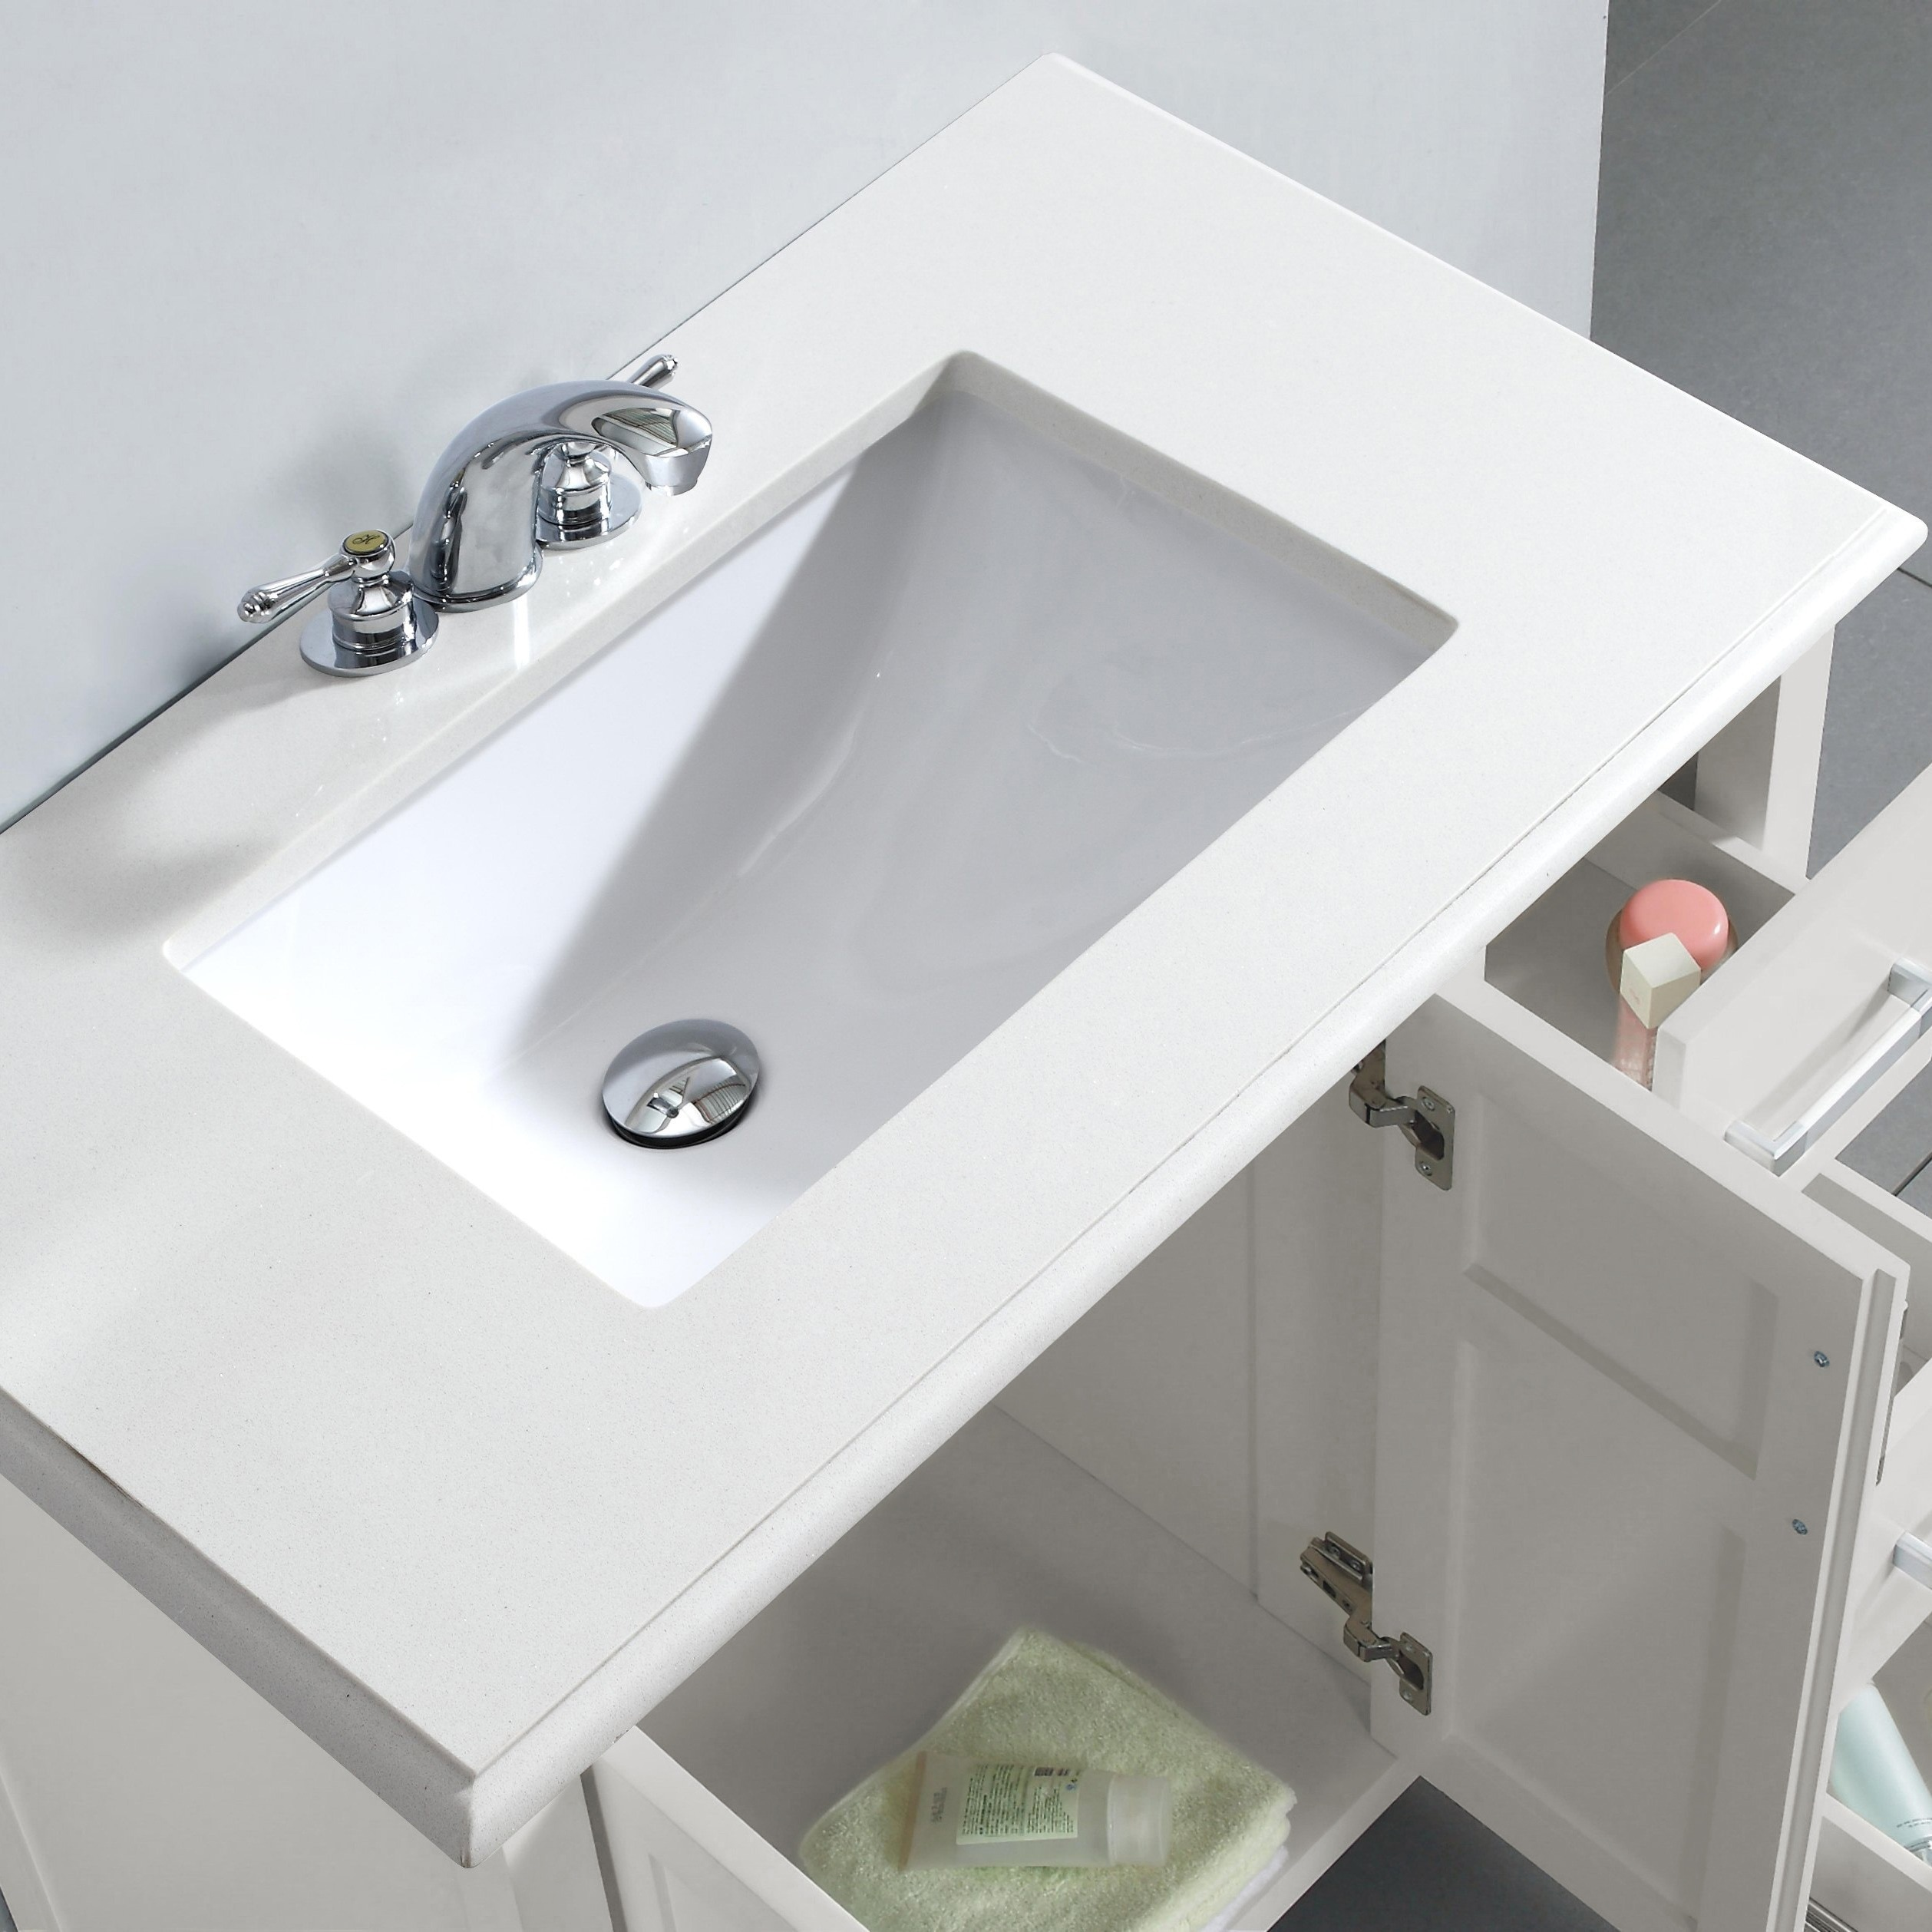 sink for faucet vessel kraususa design is sinks with combination com glass beautiful your what faucets a bathroom and